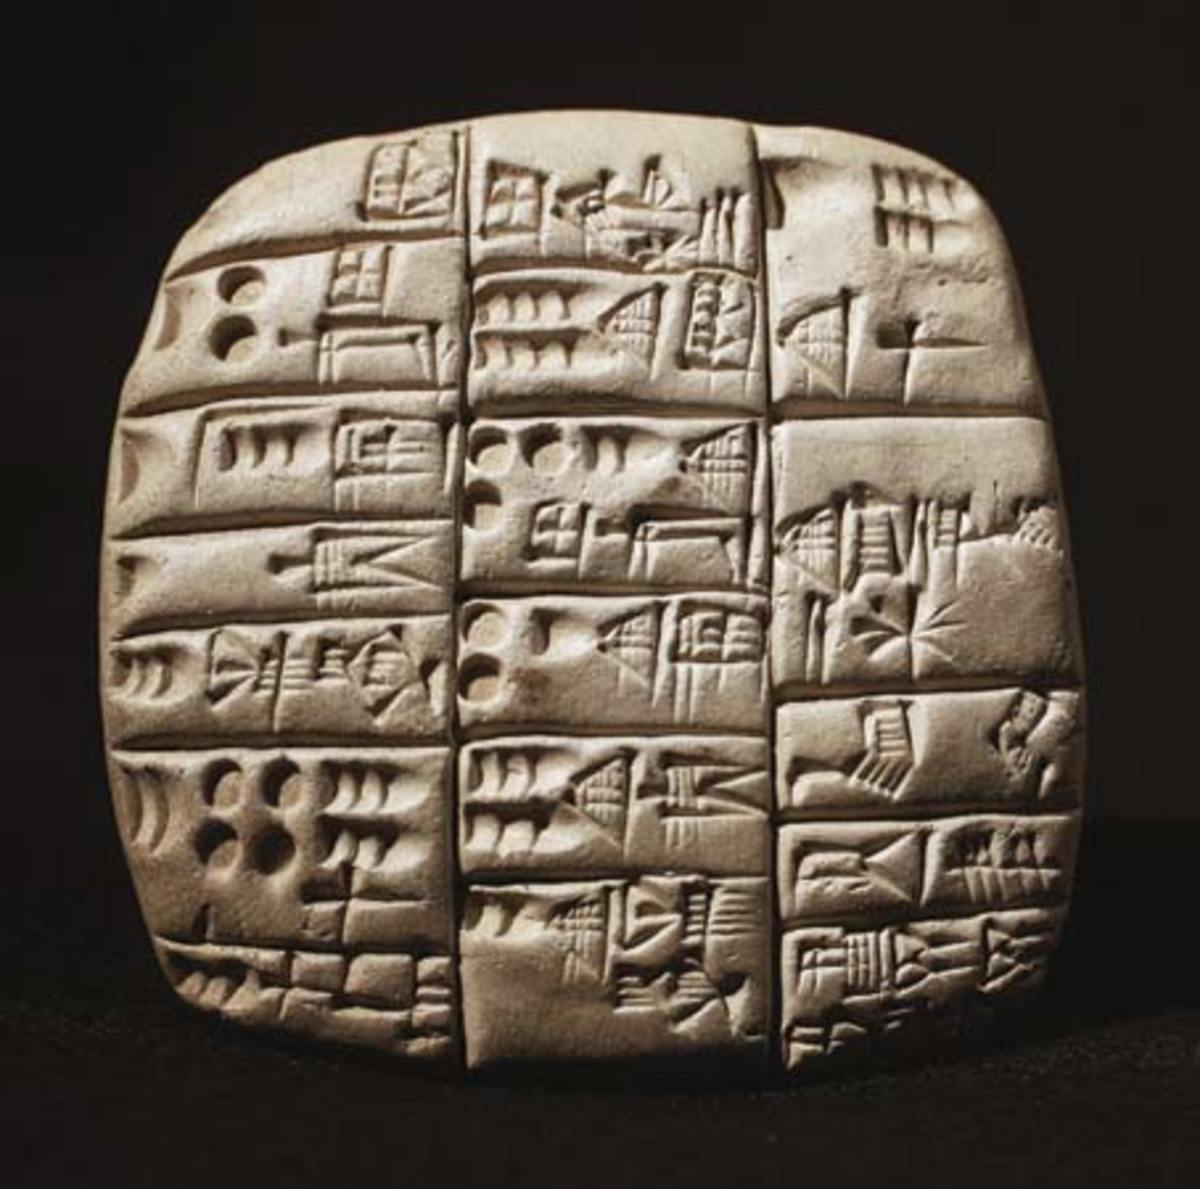 An example of cuneiform, a style of writing utilized in Mesopotamia.